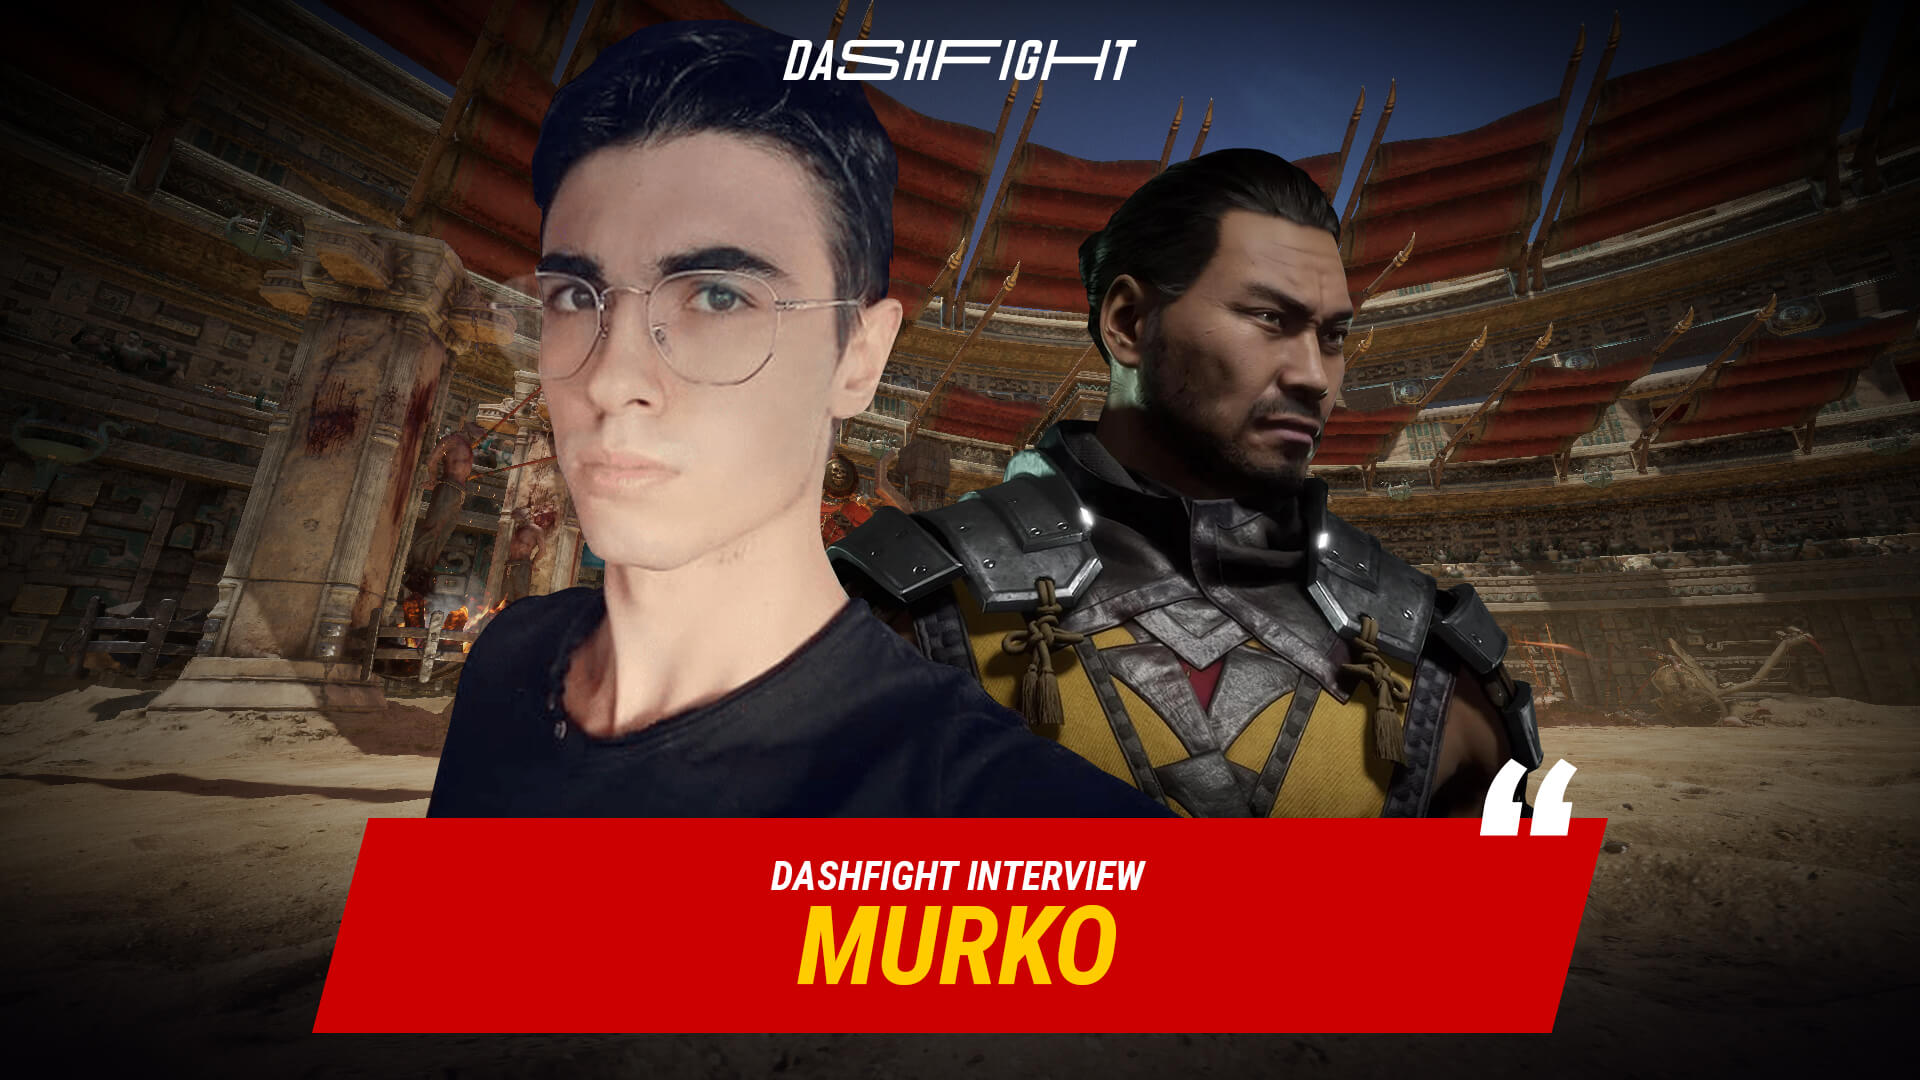 Murko Interview: I Use Scorpion Partly Because of My Zodiac Sign